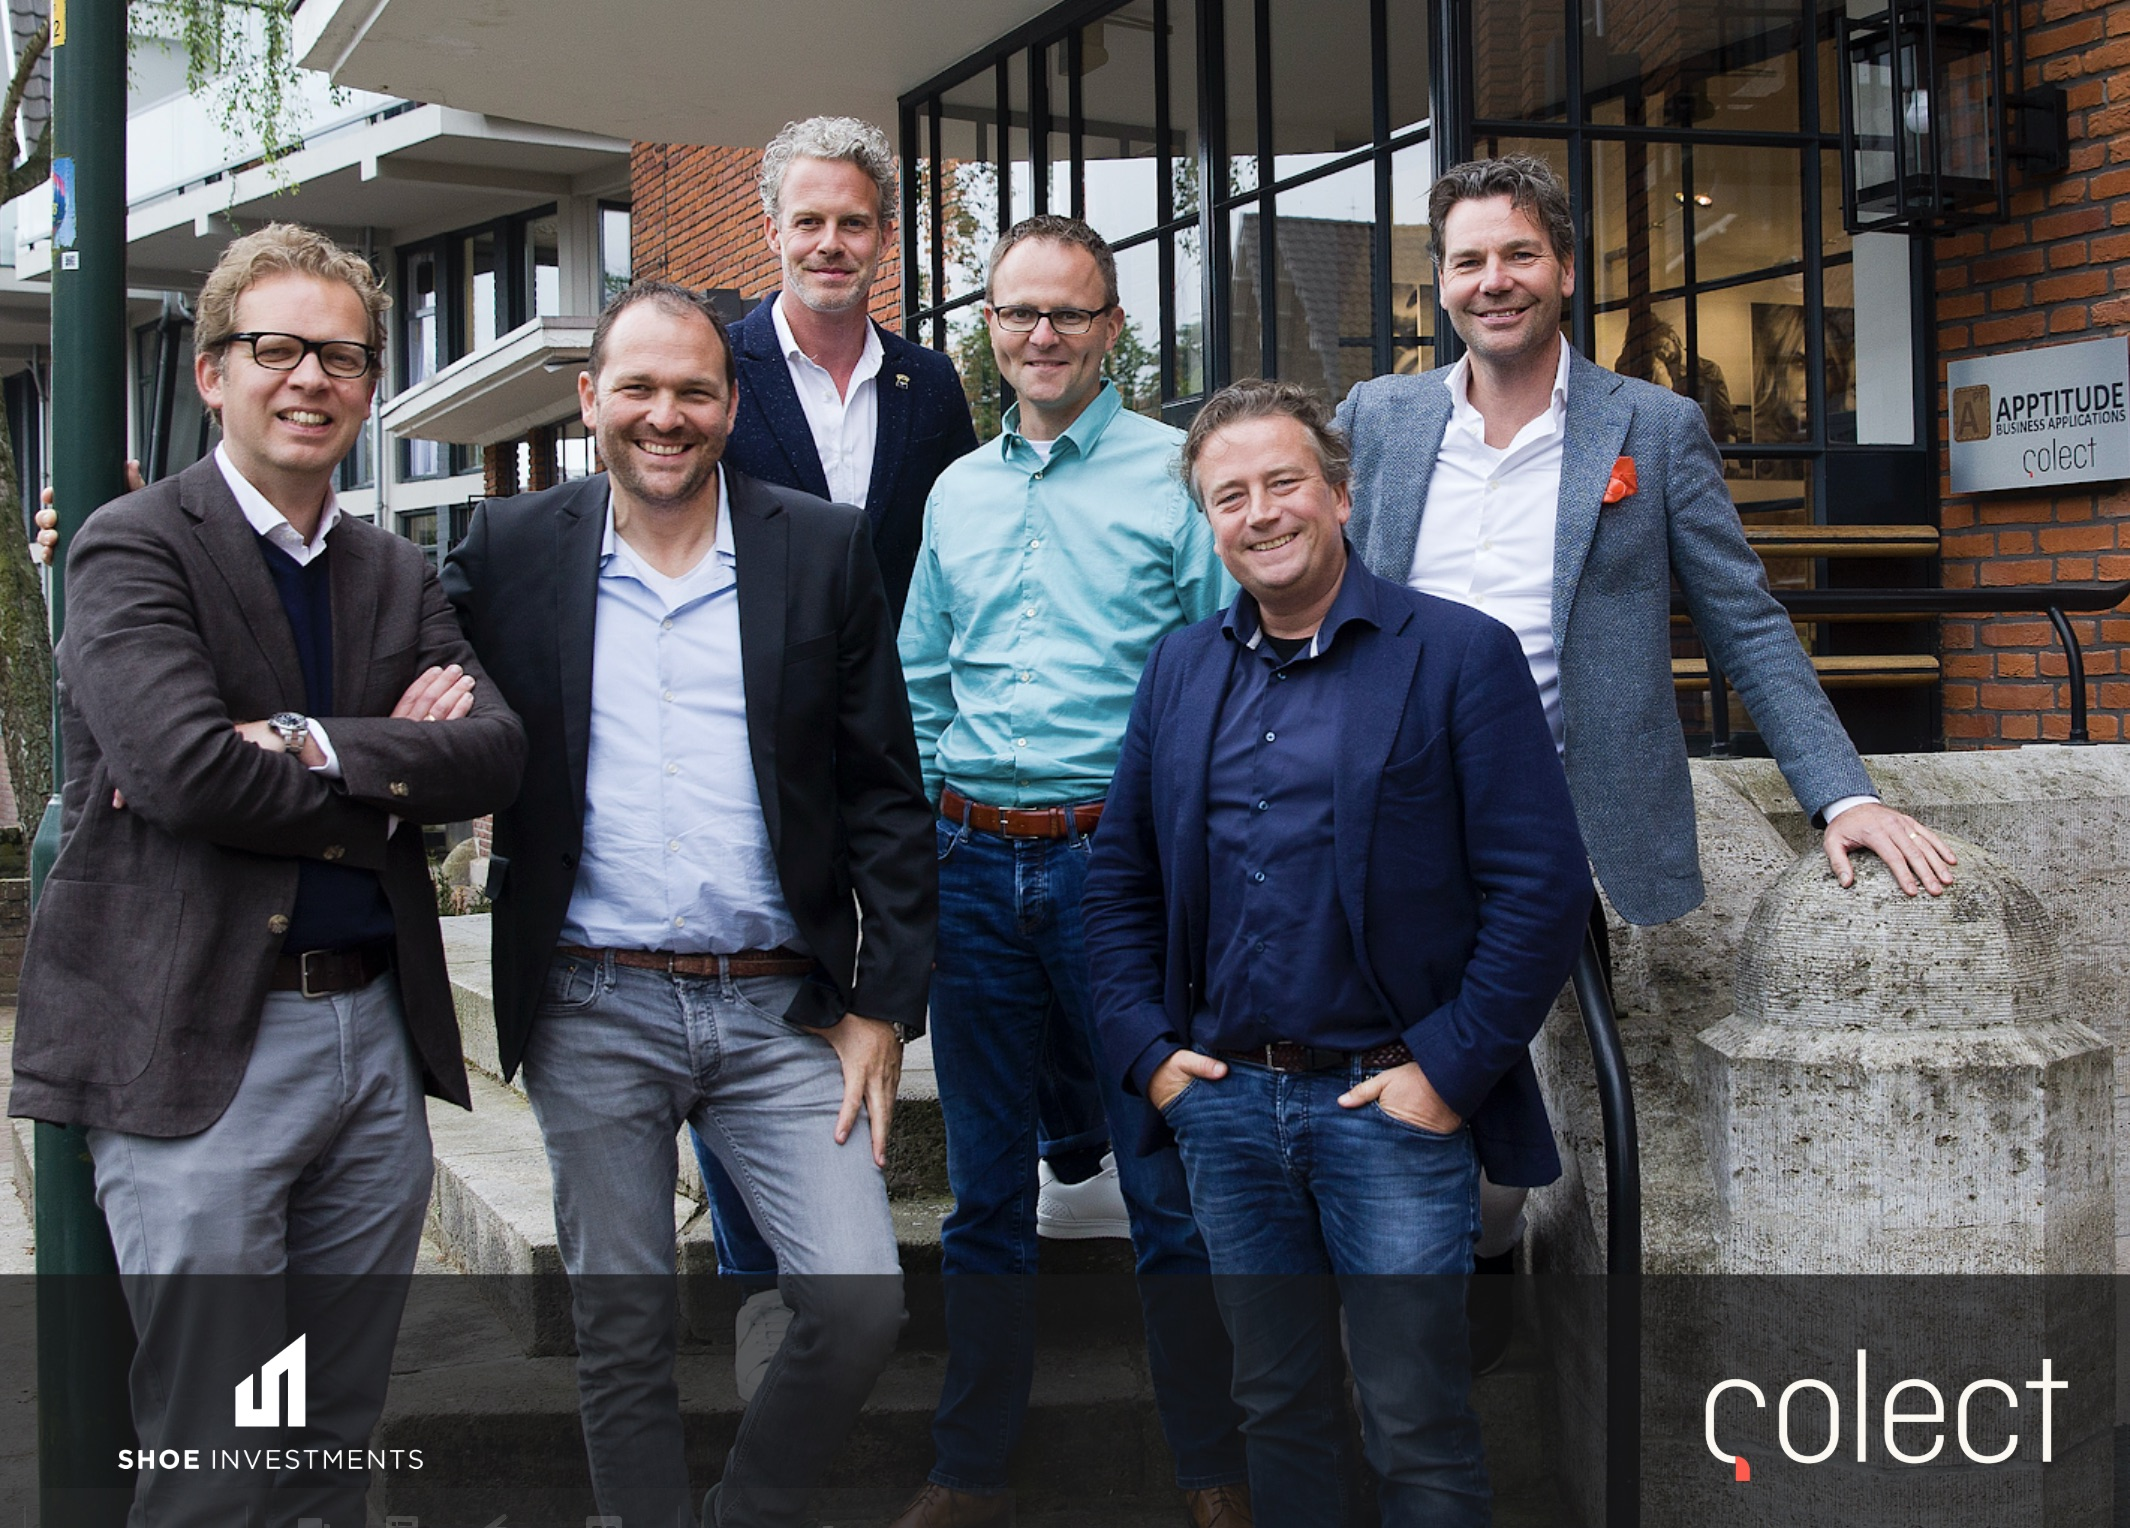 Colect secures growth funding deal